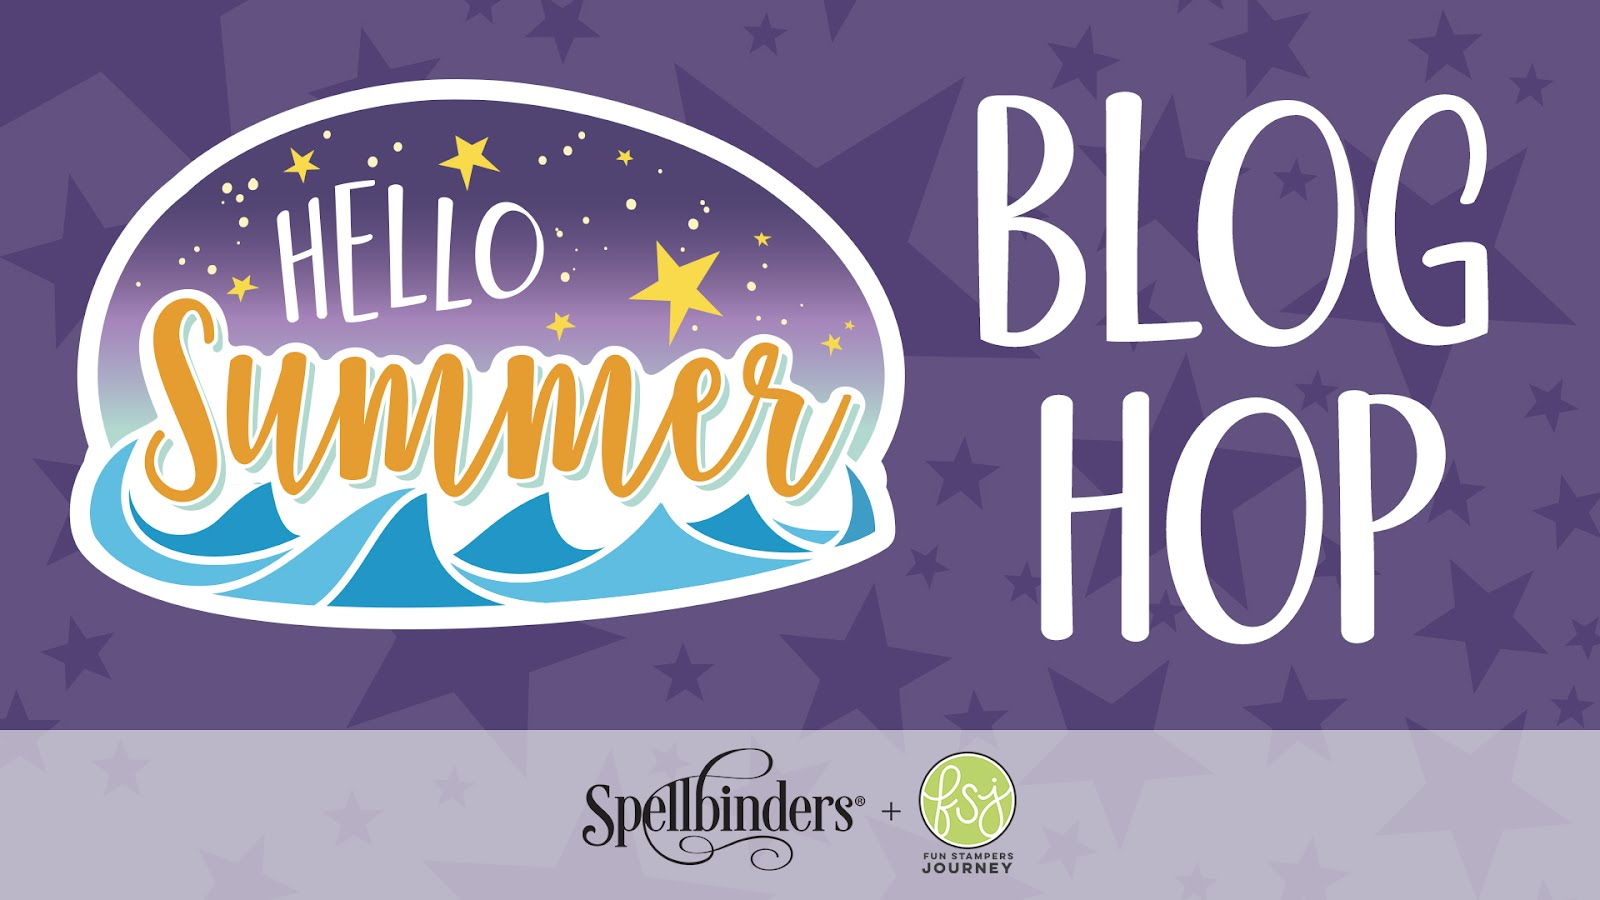 Hello Summer Release Blog Hop + Giveaway | Spellbinders + Fun Stampers Journey